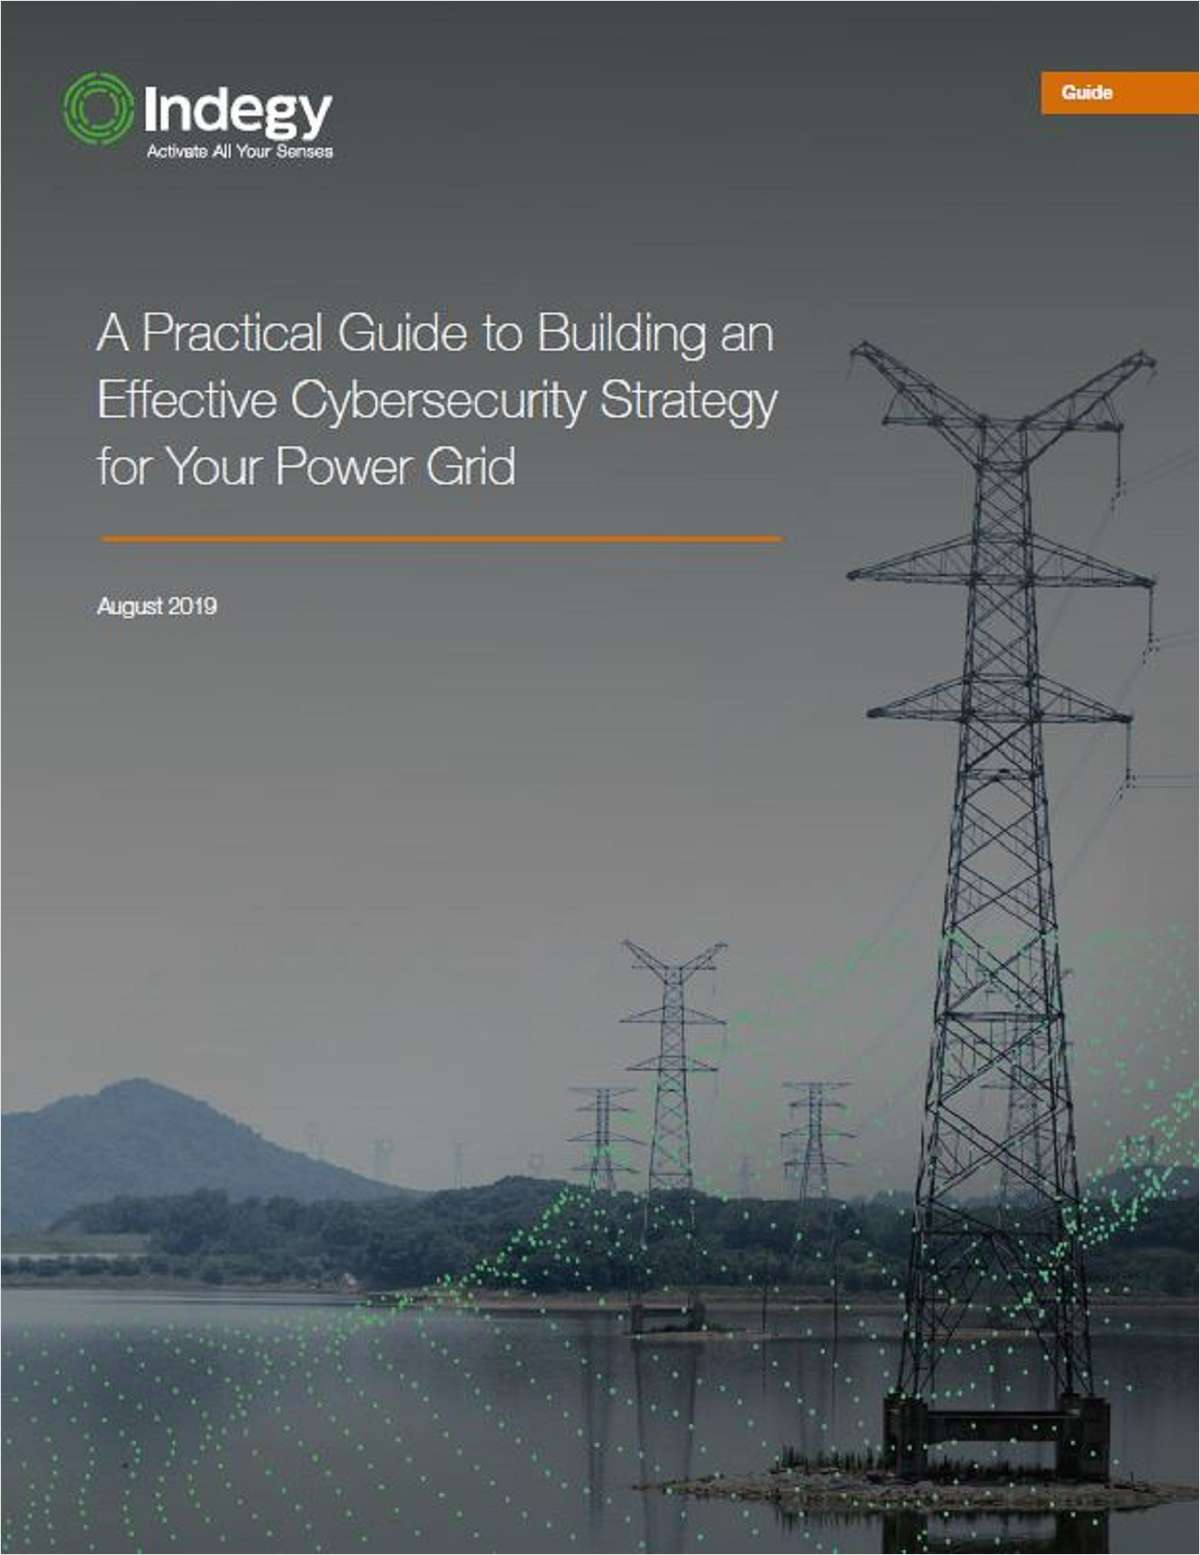 ICS Cyber Security Guide for the Electrical Grid